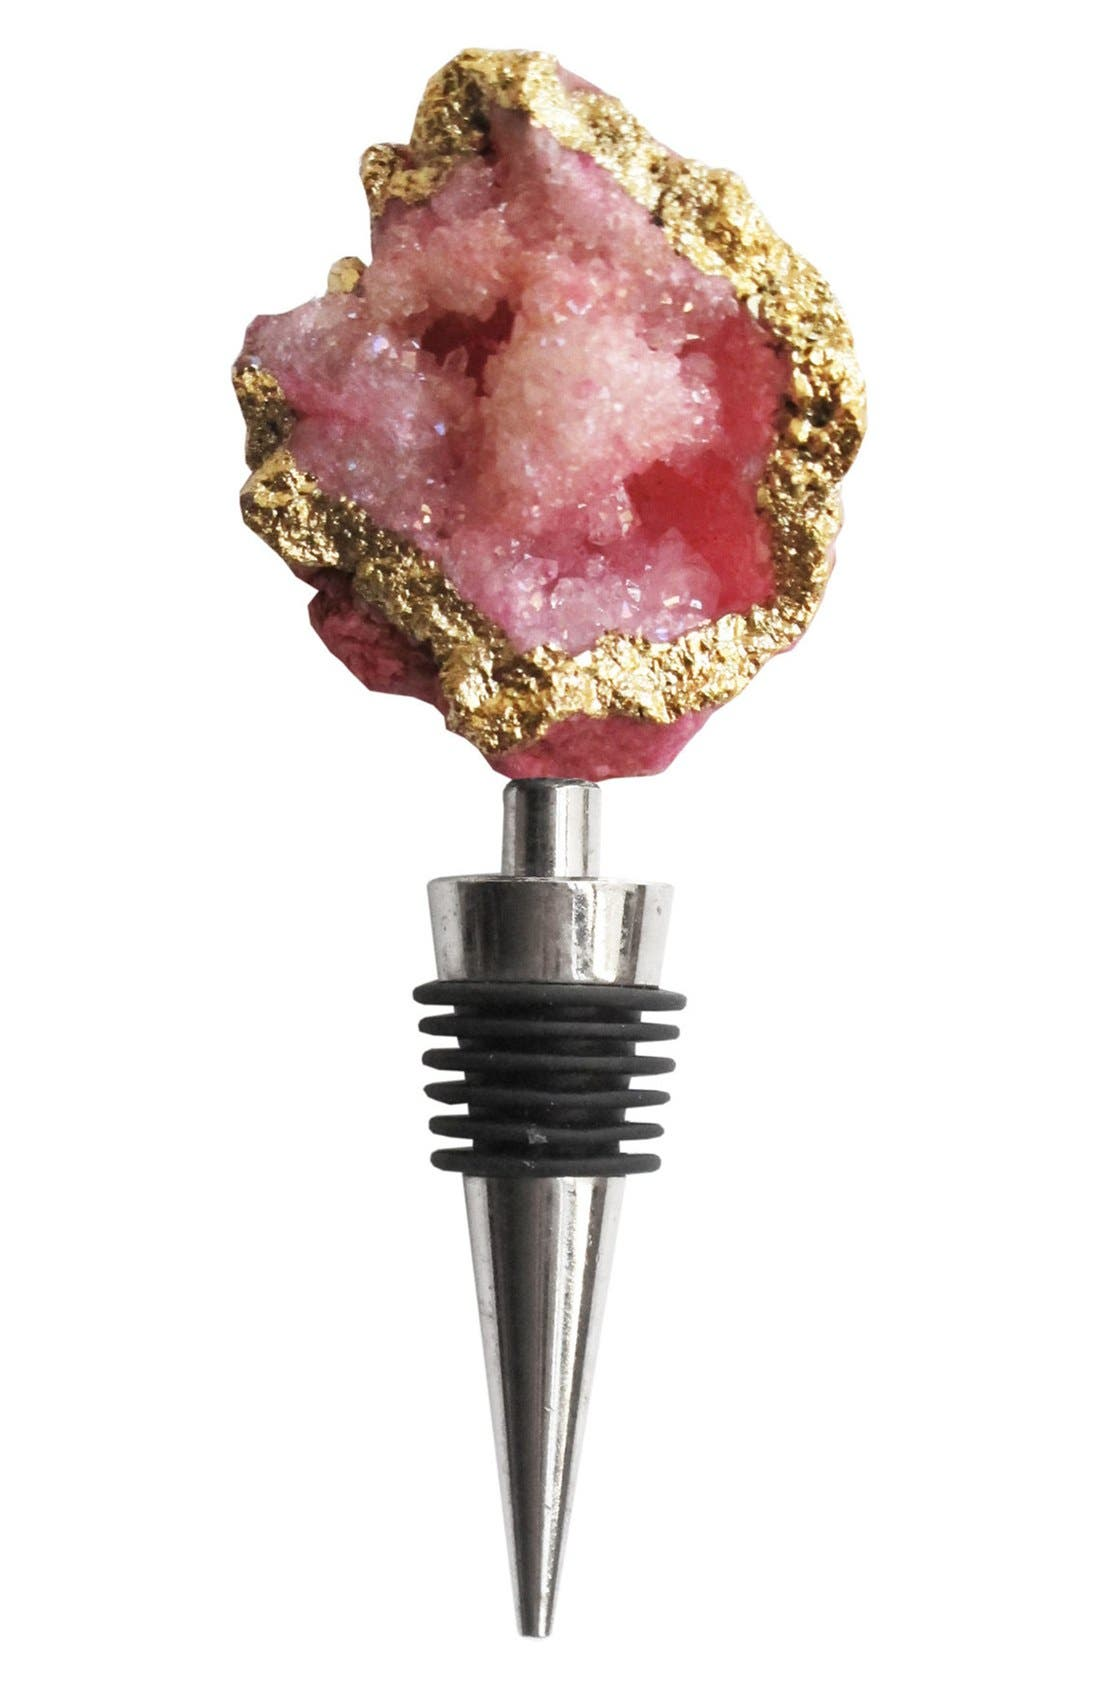 Alternate Image 1 Selected - American Atelier Agate Wine Stopper